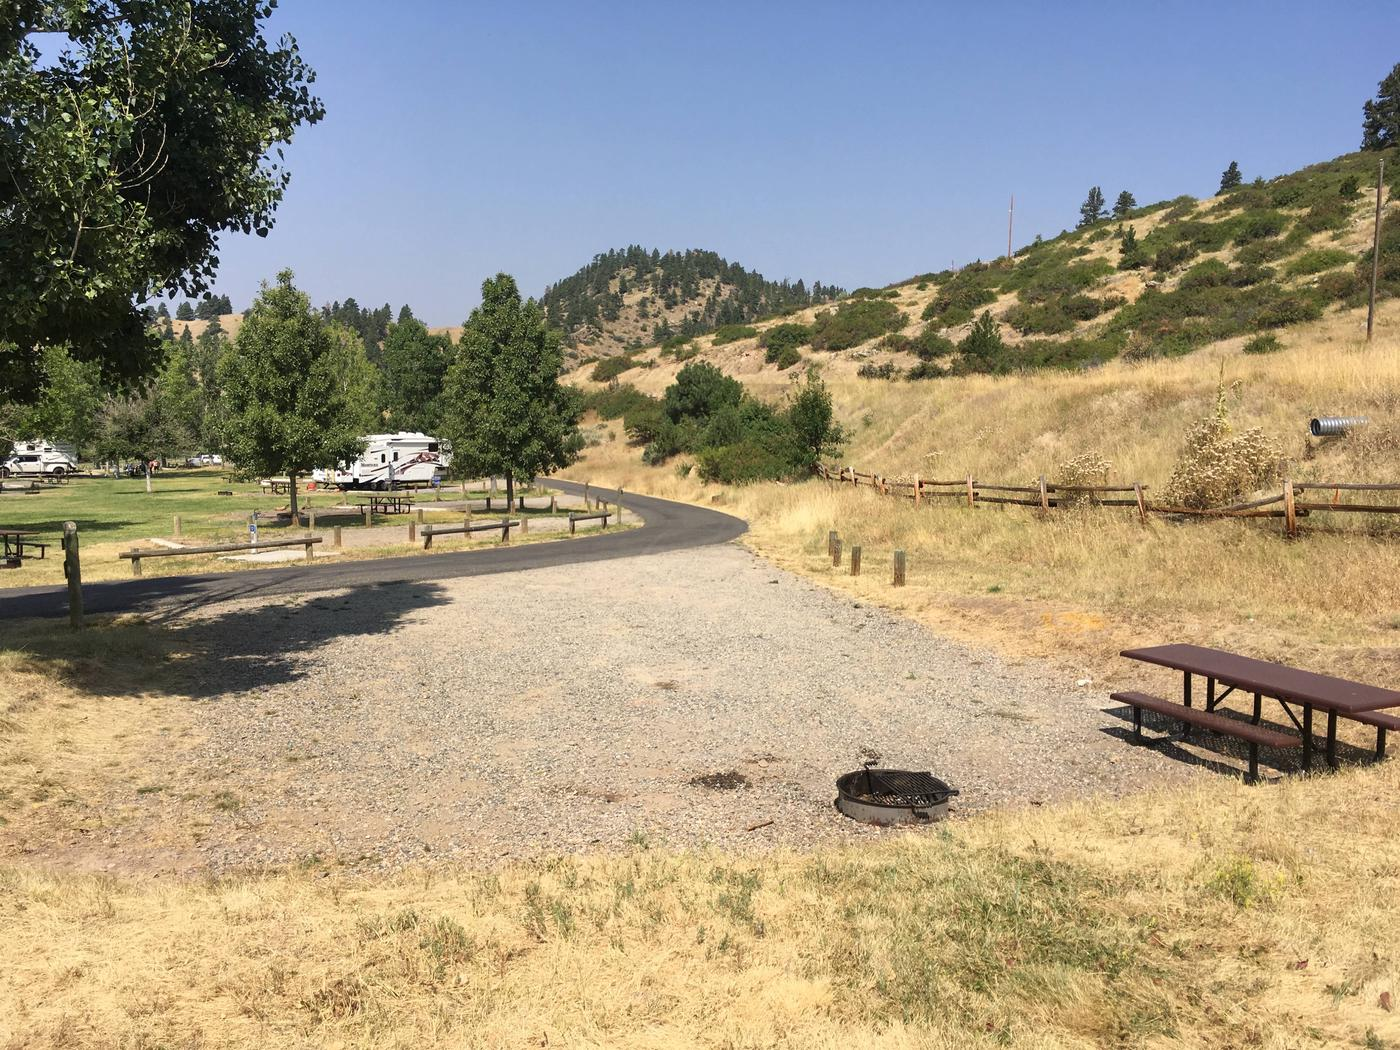 View of Holter Lake Campground from site 22. Paved access leads to graveled pad with picnic table and fire pit.Site 22 BLM Holter Lake Campground